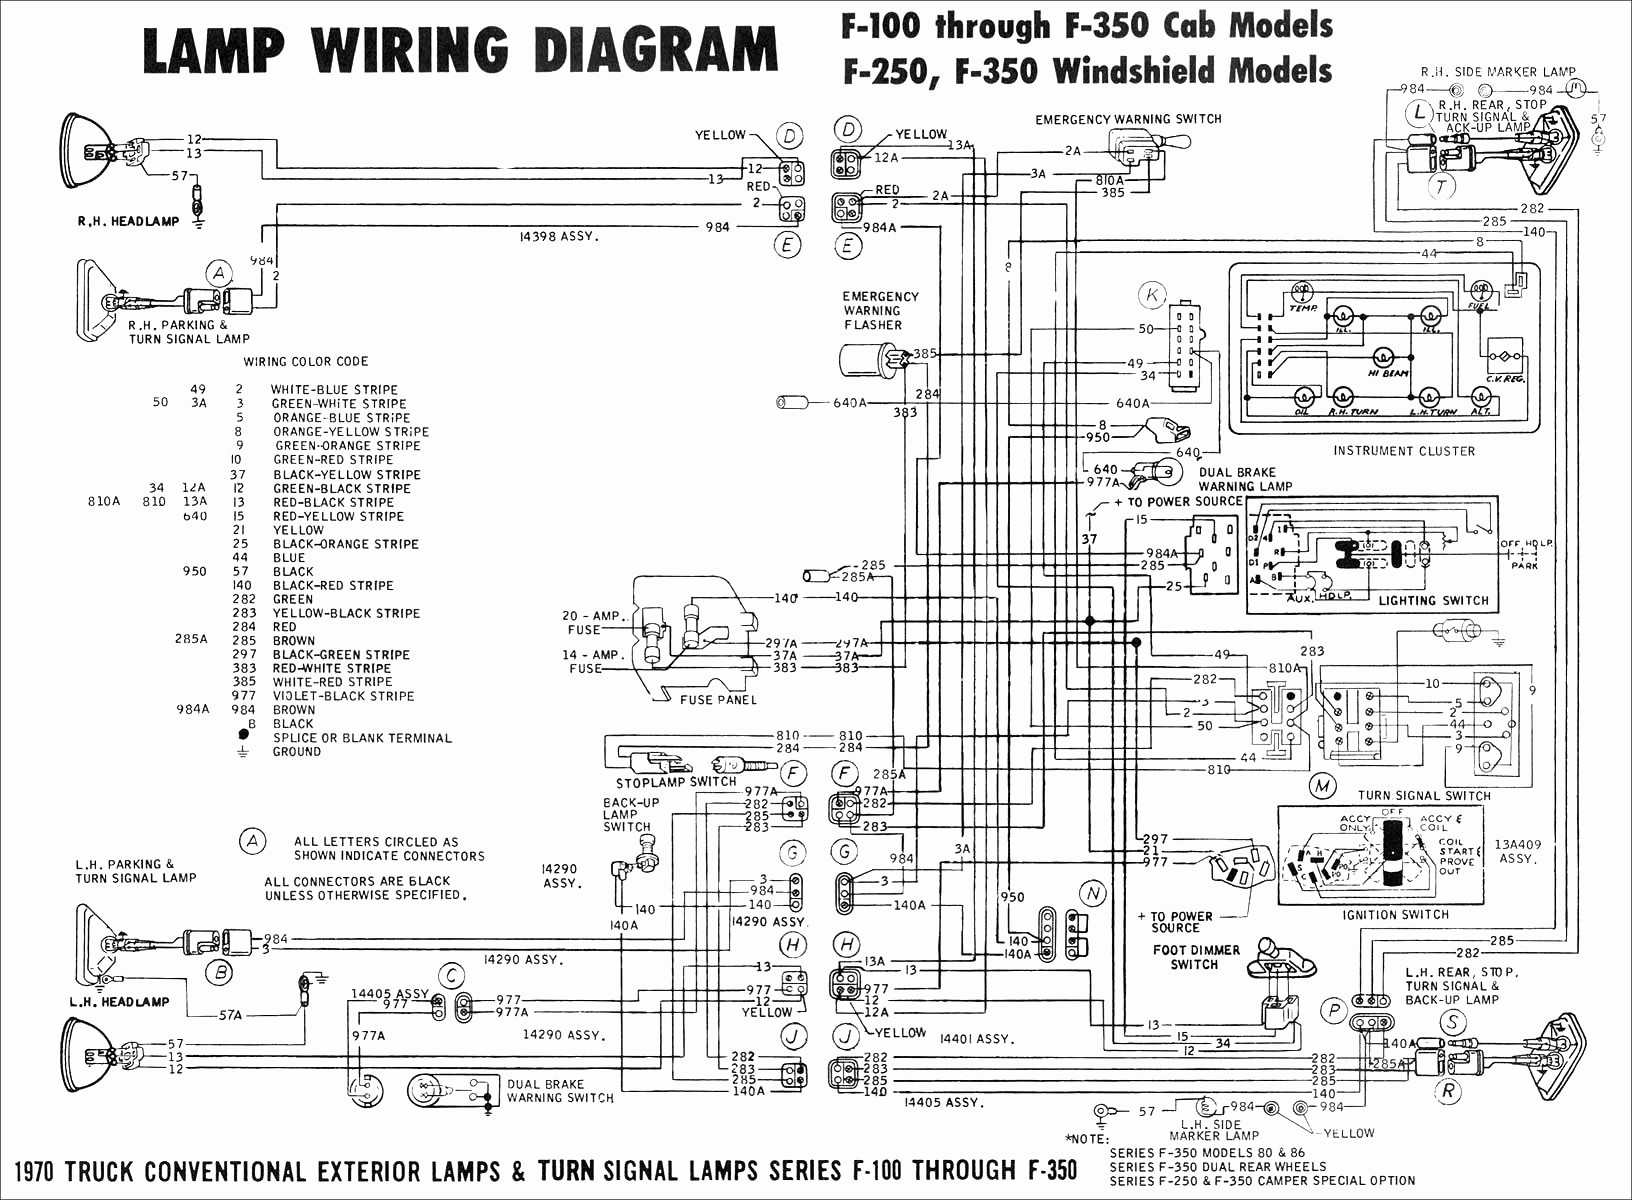 2017 Ford F550 Pto Wiring Diagram Sample Pdf Pto 2000 Ford F450 Wiring Auto Electrical Wiring Diagram •